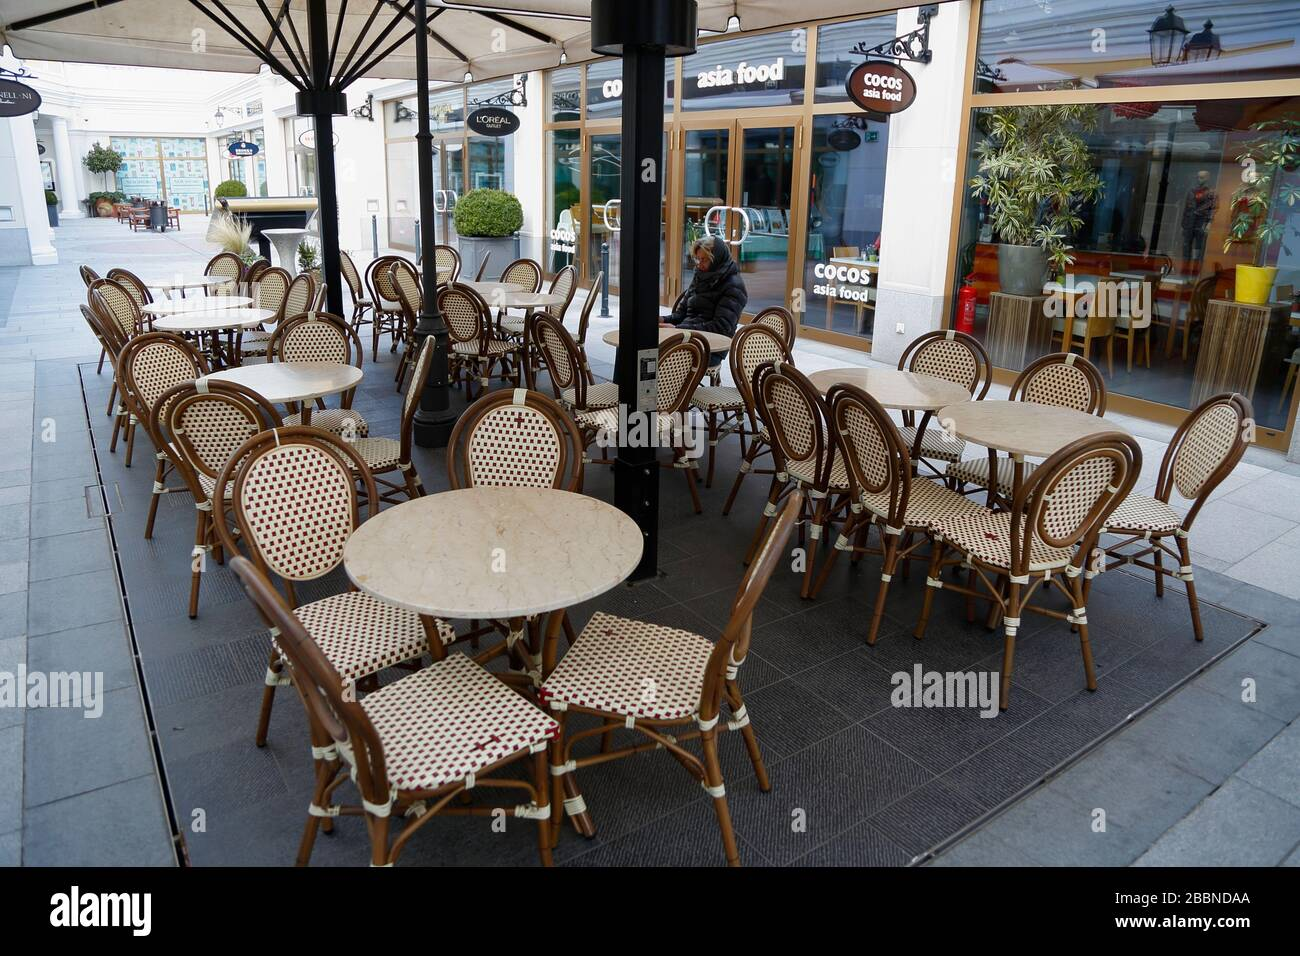 Gastgarten High Resolution Stock Photography And Images Alamy